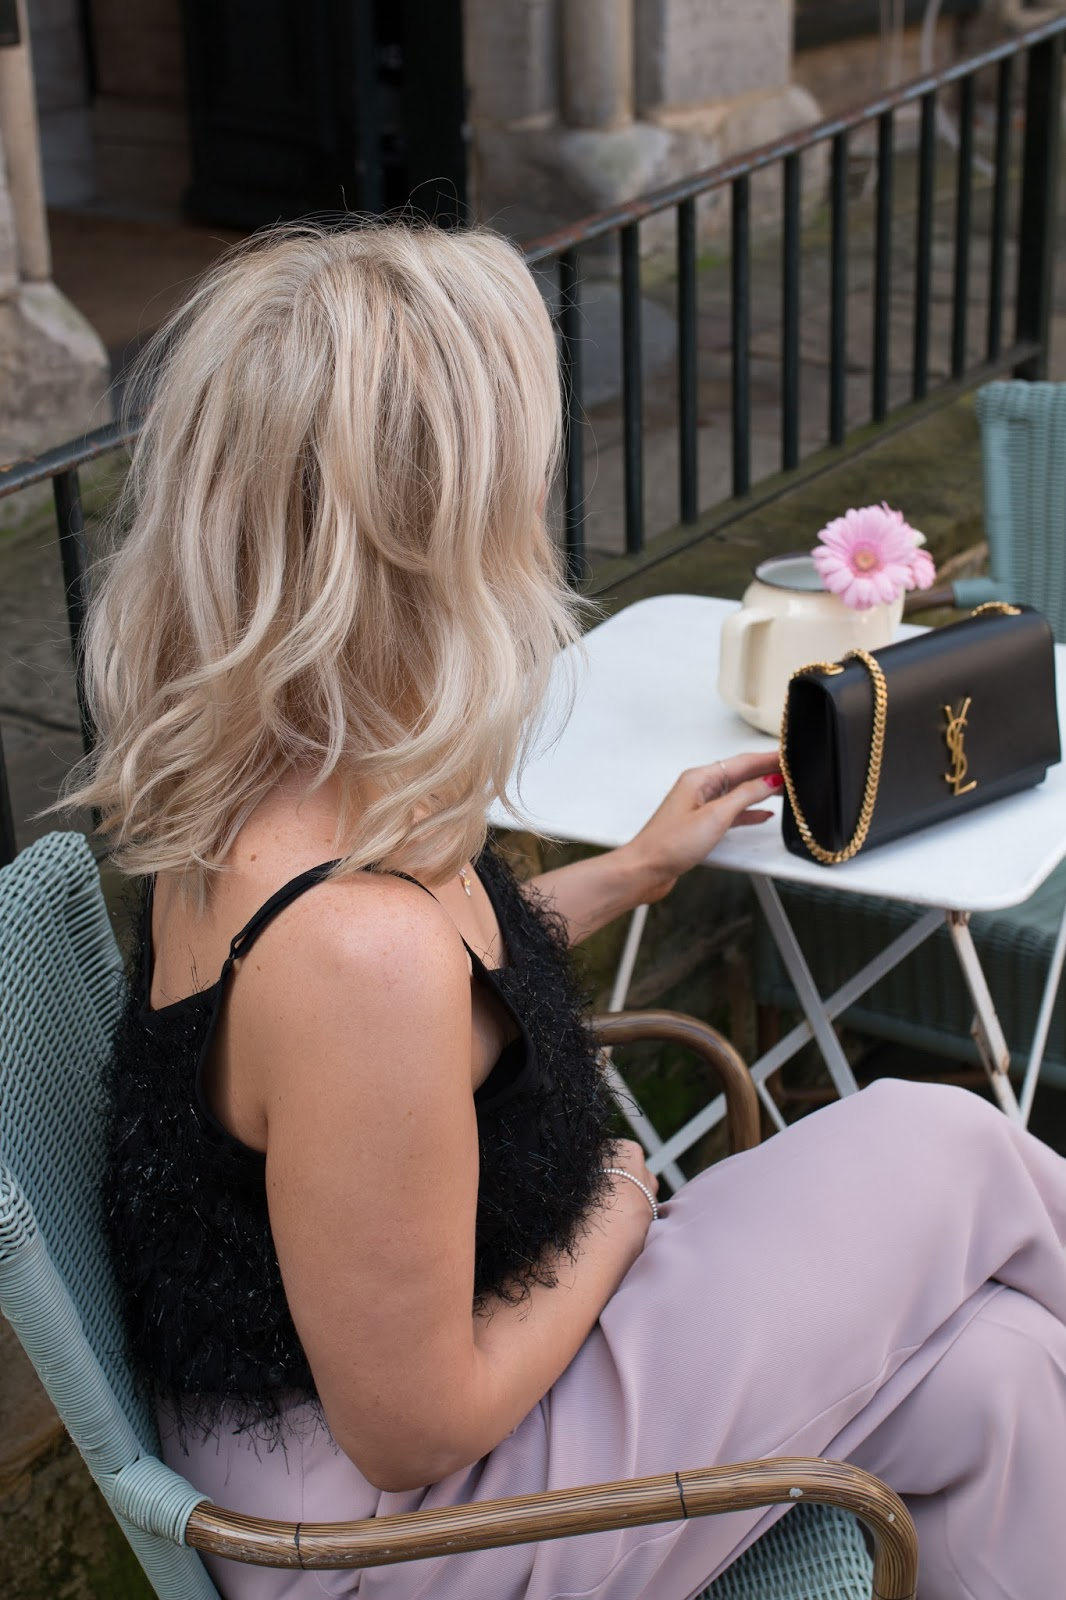 Fashion blogger and YSL Kate Monogram bag